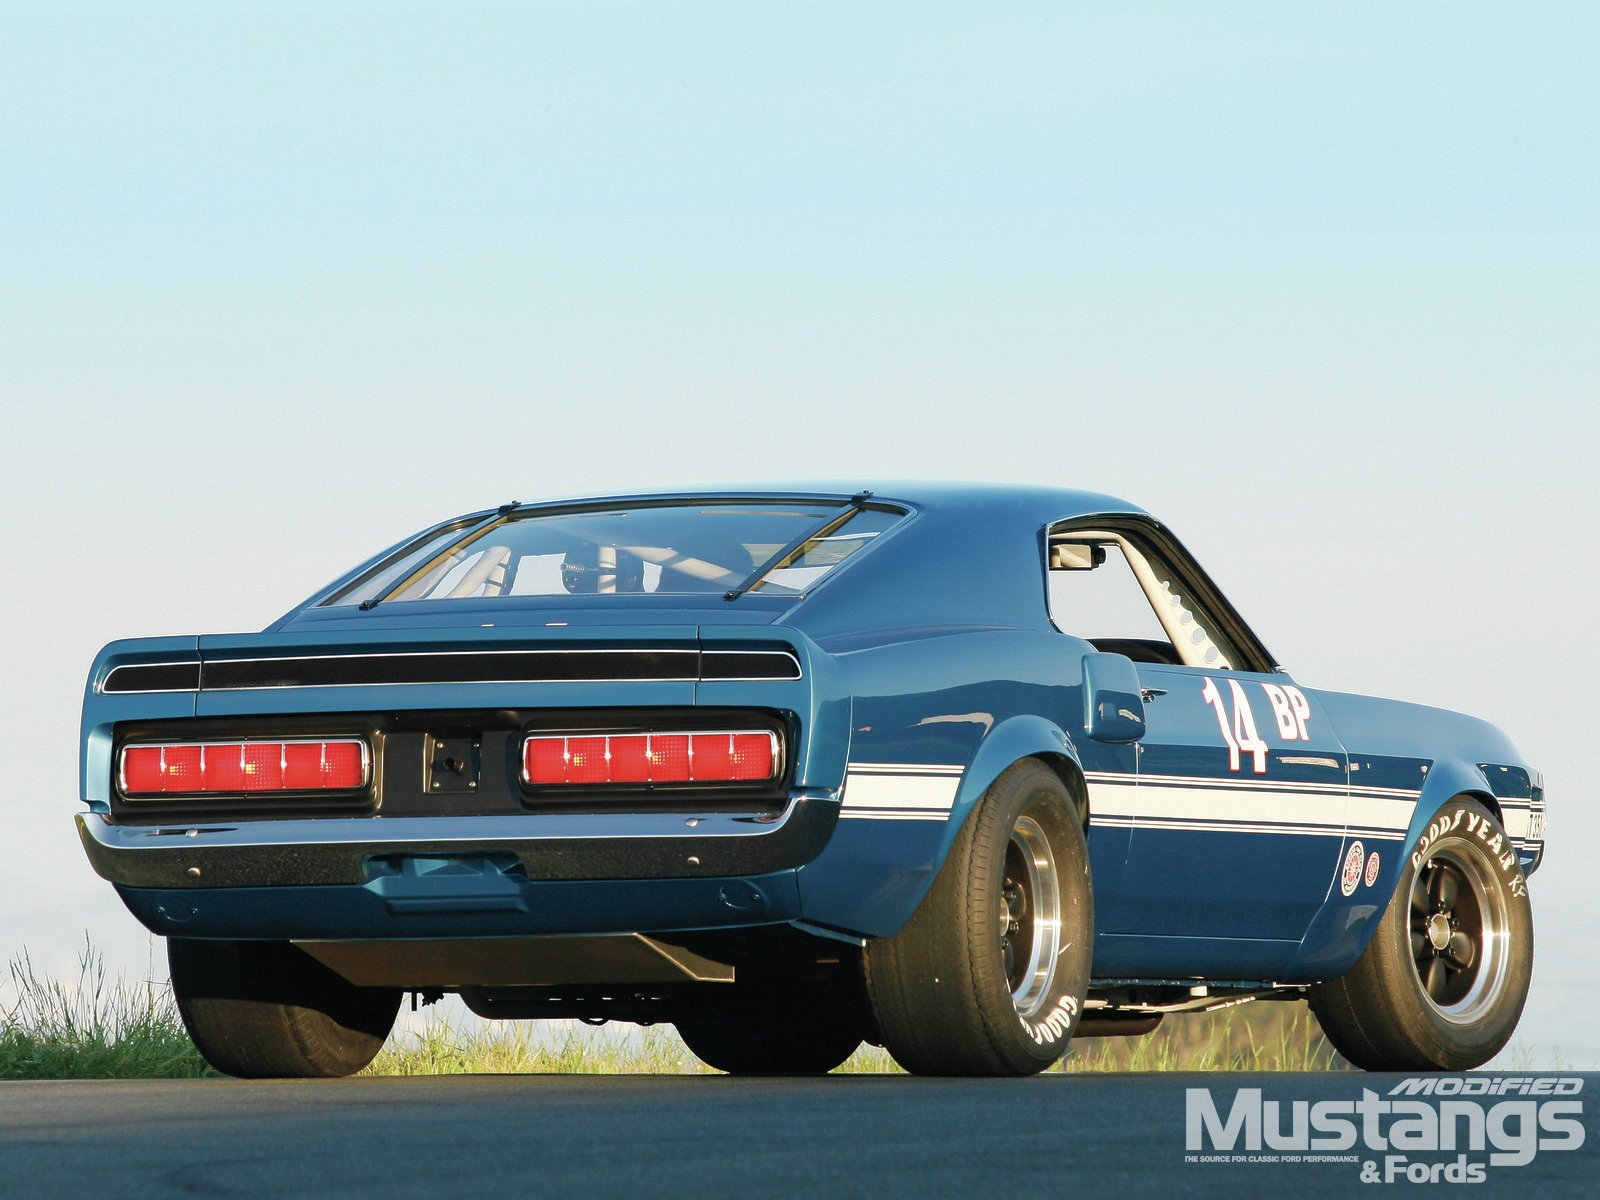 Mdmp 1301 04 1969 Ford Mustang Shelby Gt 500 Rear Three Quarter View